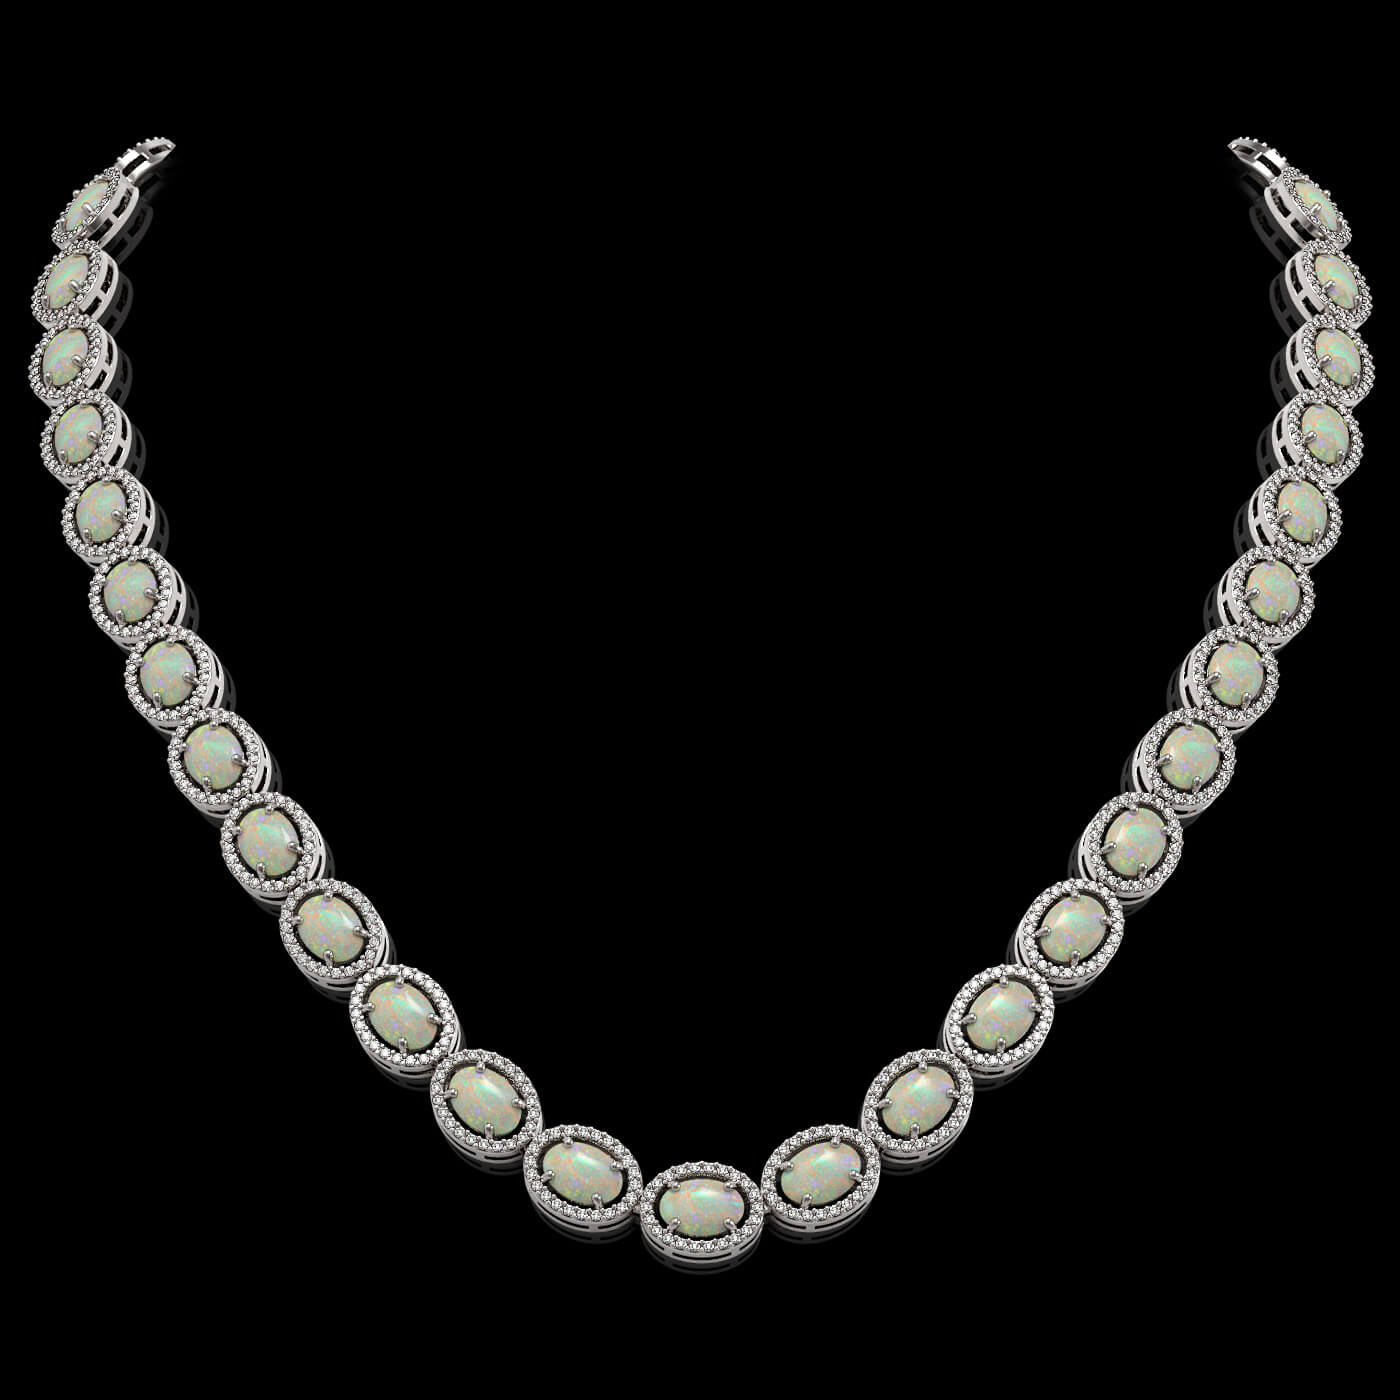 32.42 Ctw Opal & Diamond Necklace White Gold